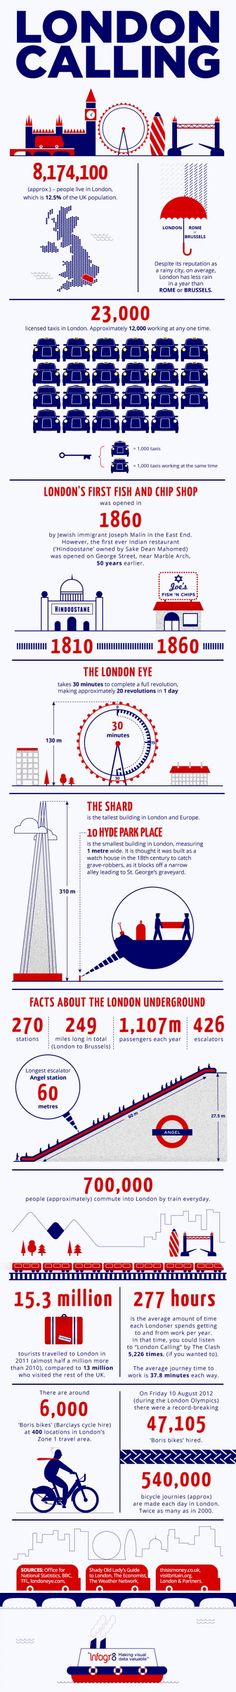 London Calling #Infographic